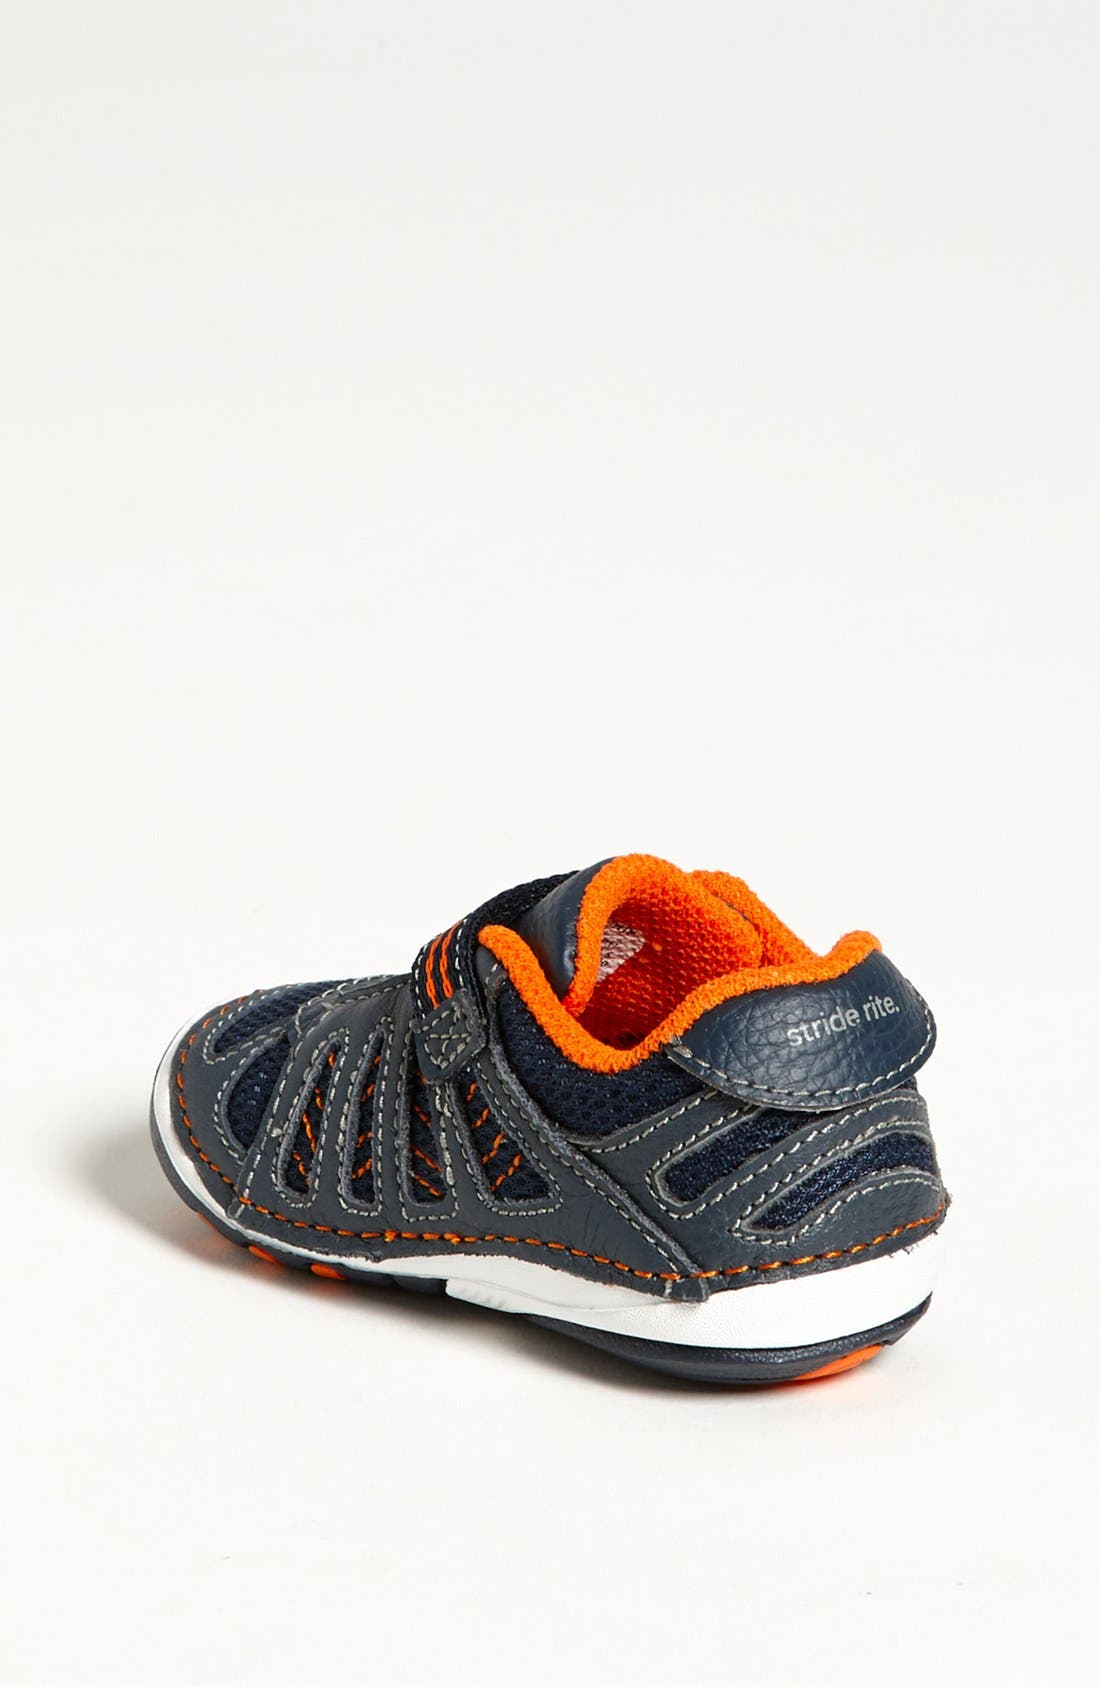 Alternate Image 2  - Stride Rite 'Chip' Sneaker (Baby & Walker)